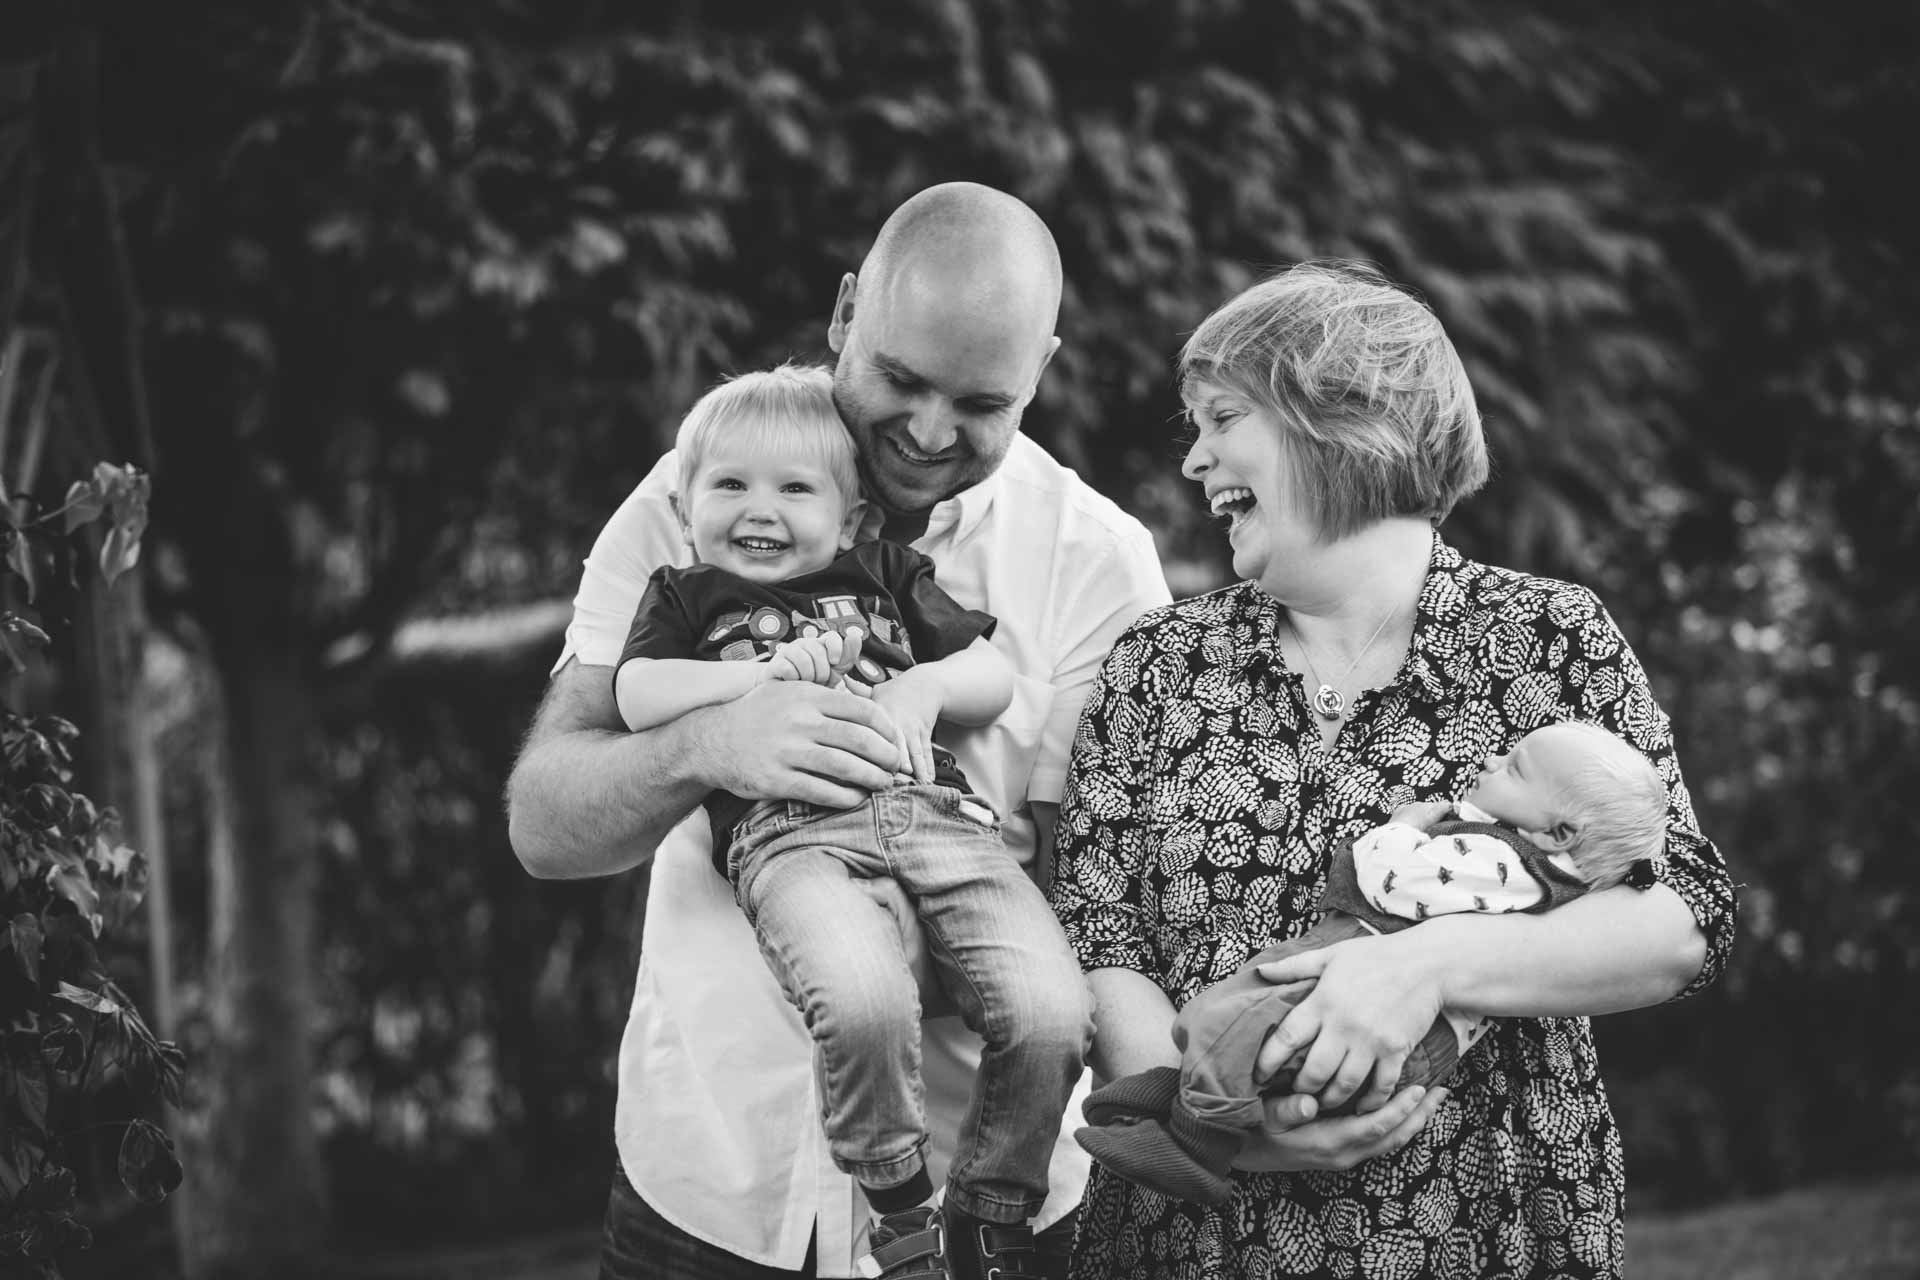 Joanna Eardley Family & Lifestyle Portrait Photography